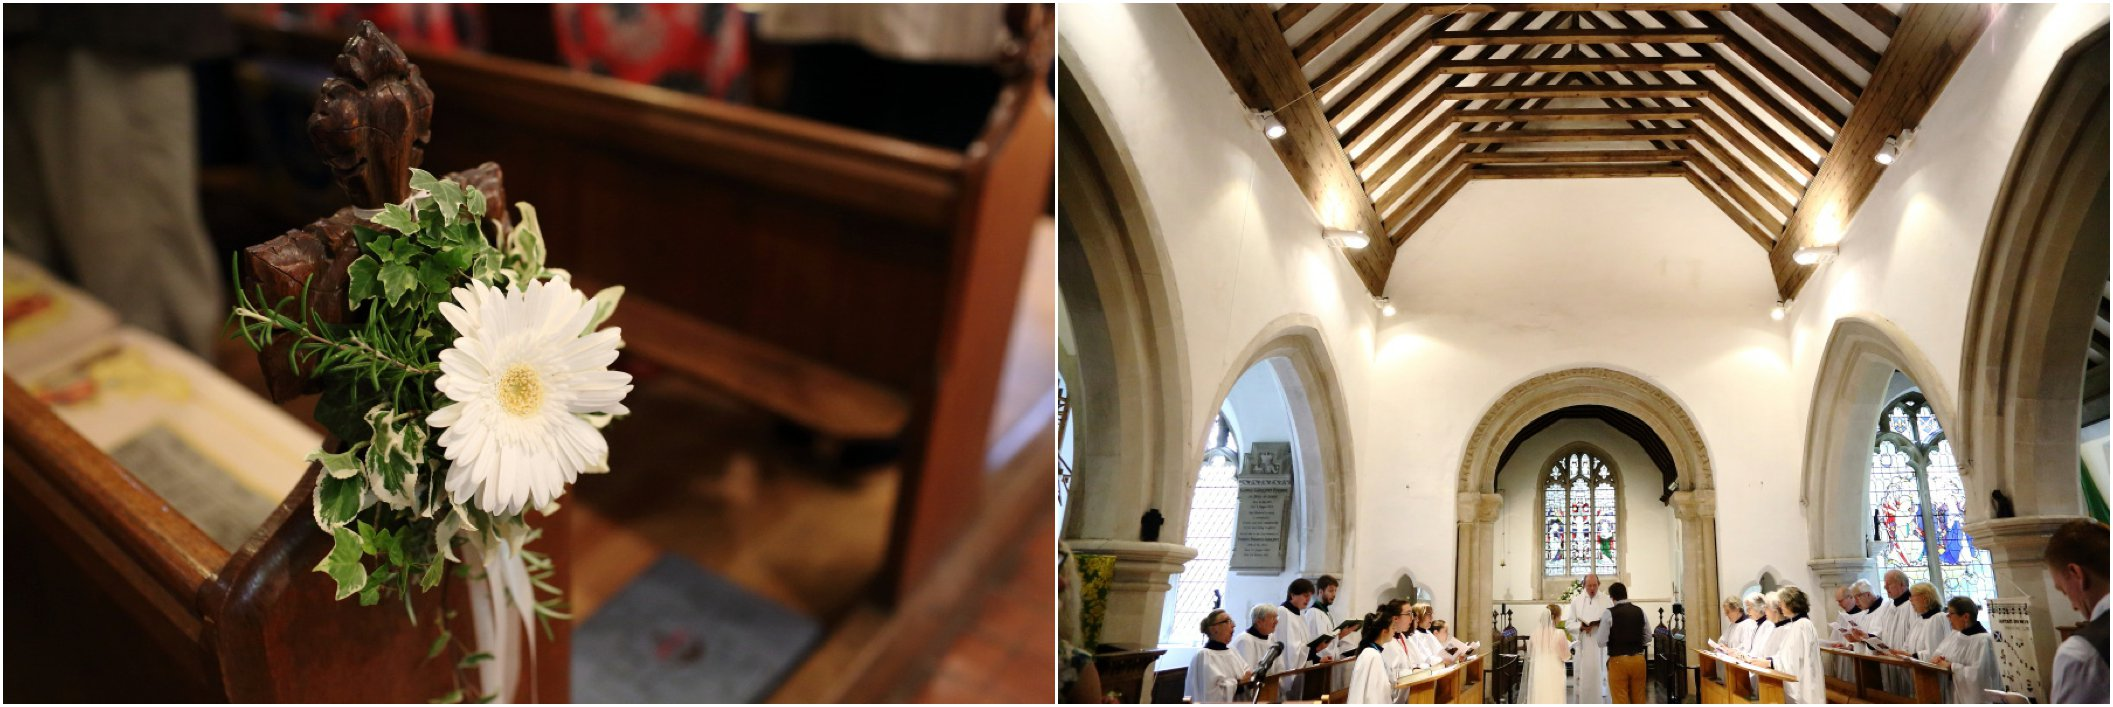 Stapleford Church wedding photography, cambridge